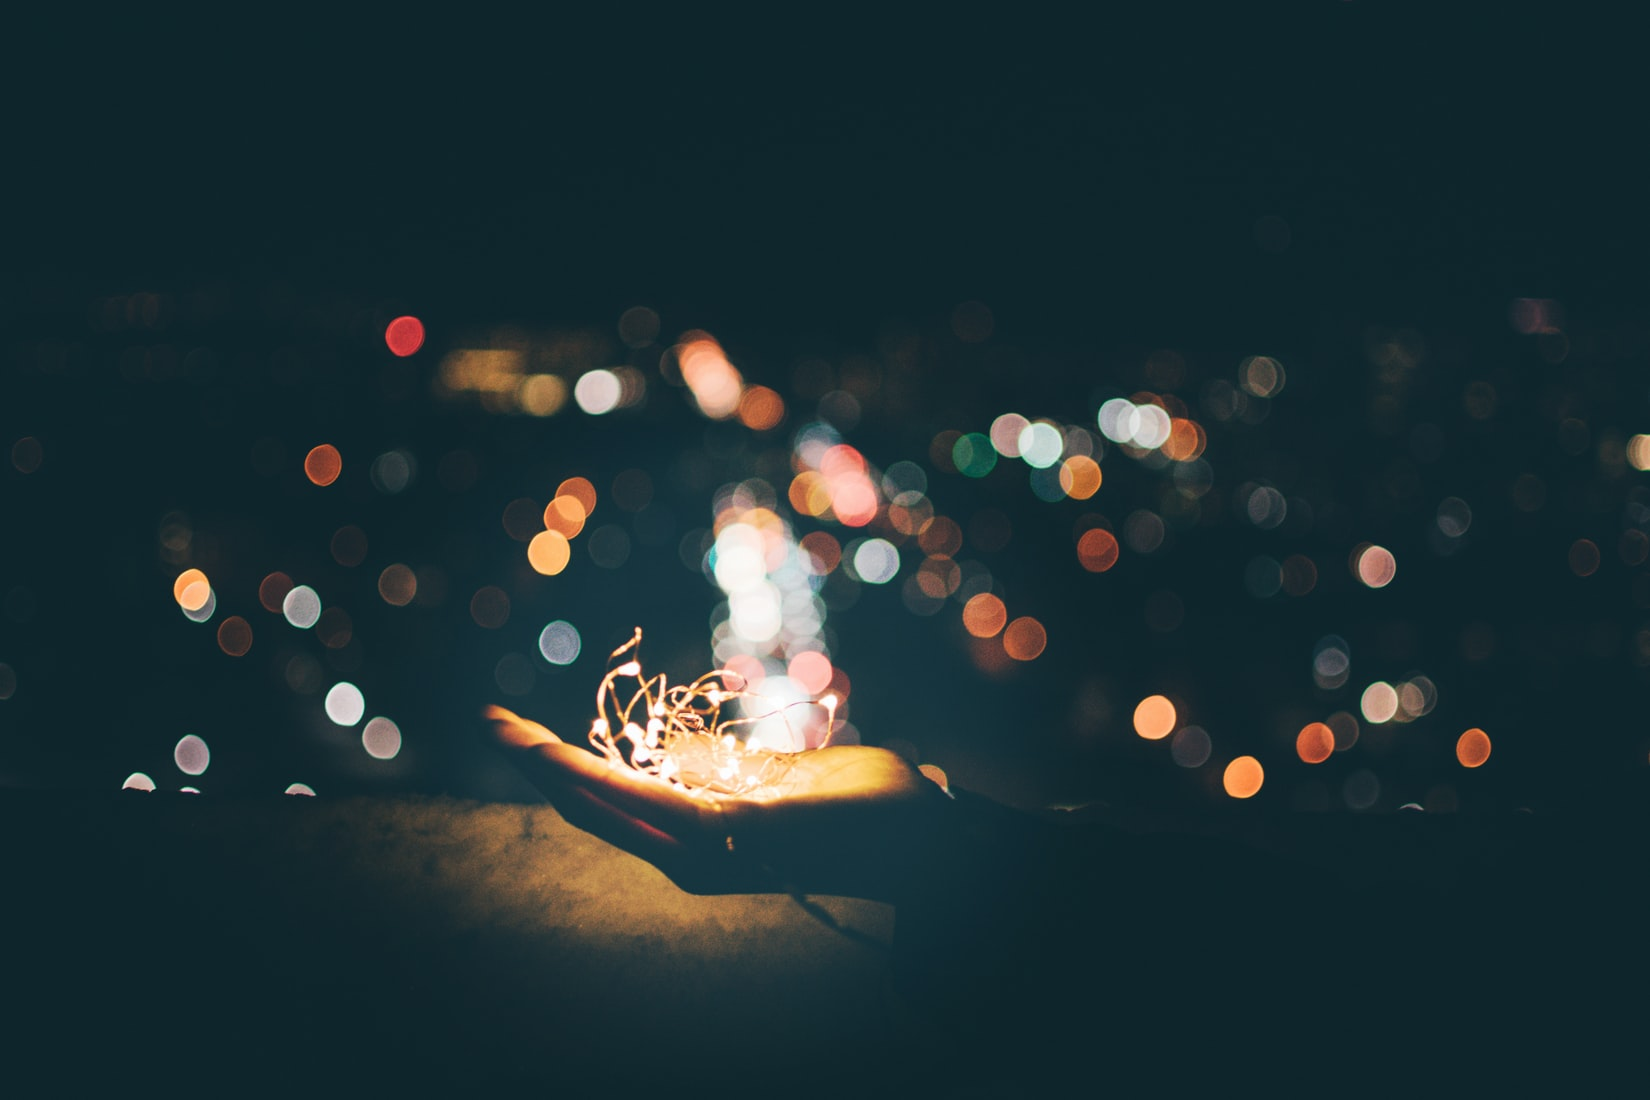 photo of a hand holding out lights